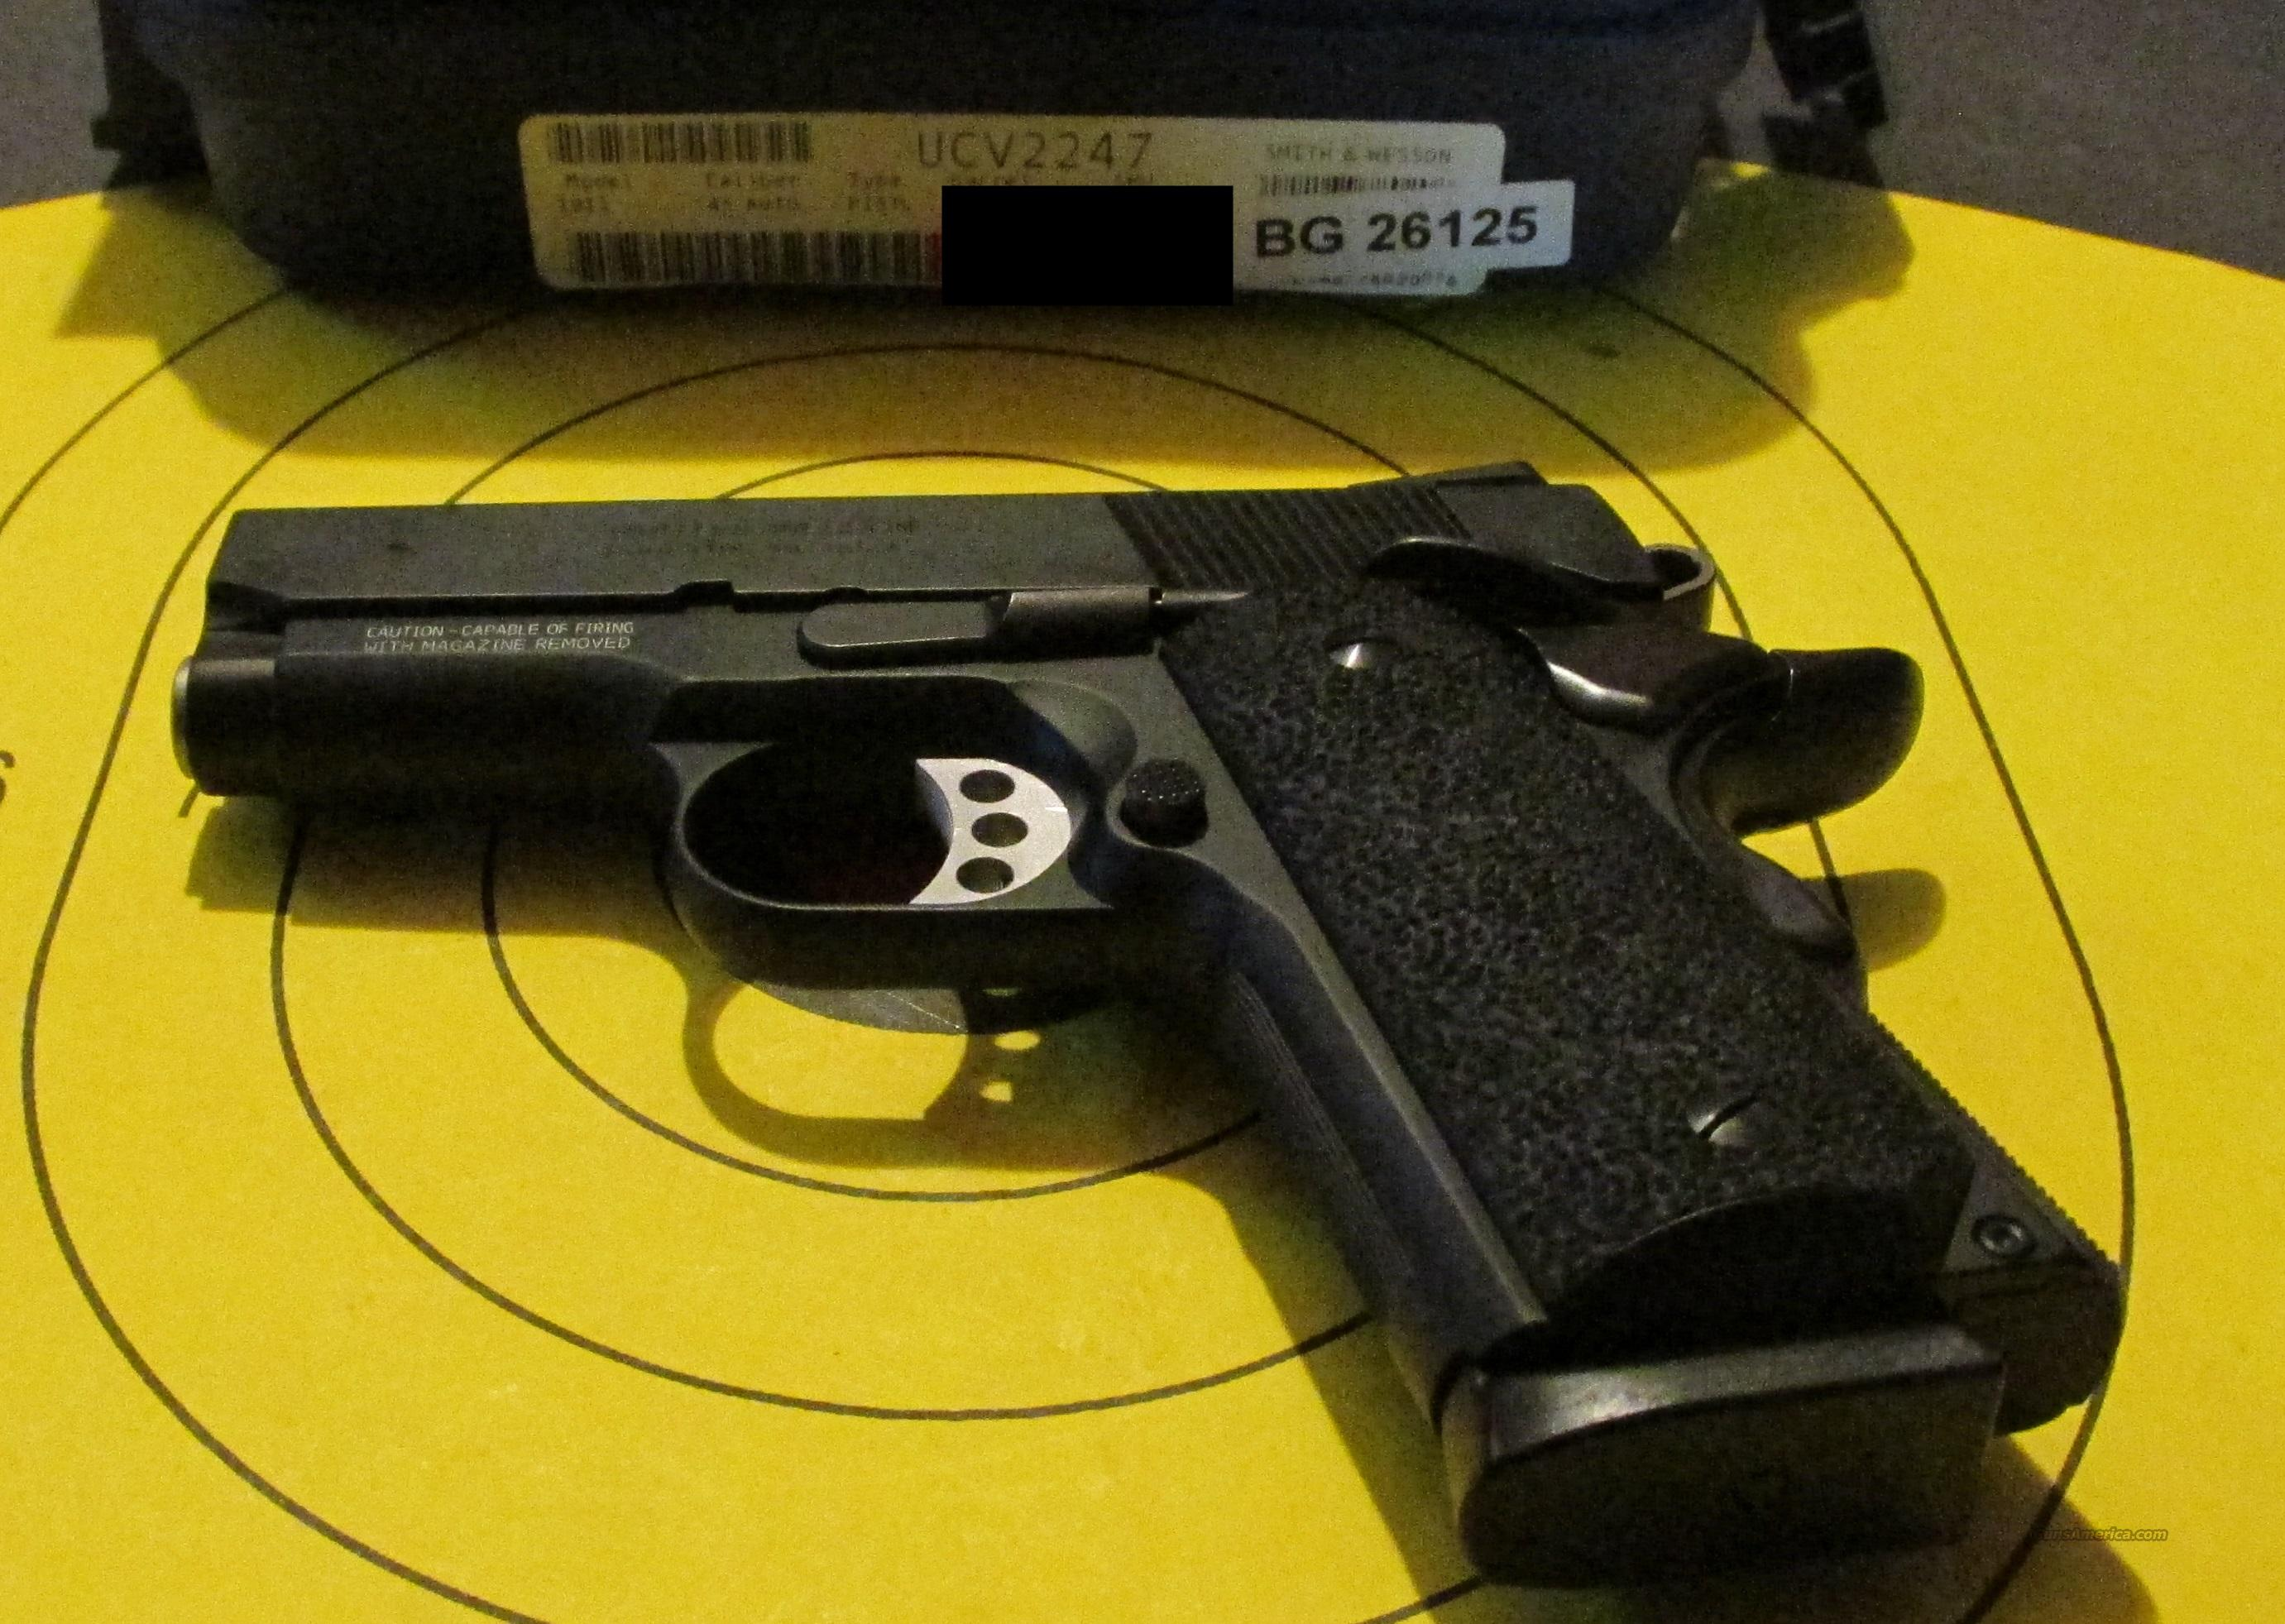 SMITH & WESSON 1911 PRO SERIES 45 ACP PISTOL  Guns > Pistols > Smith & Wesson Pistols - Autos > Steel Frame